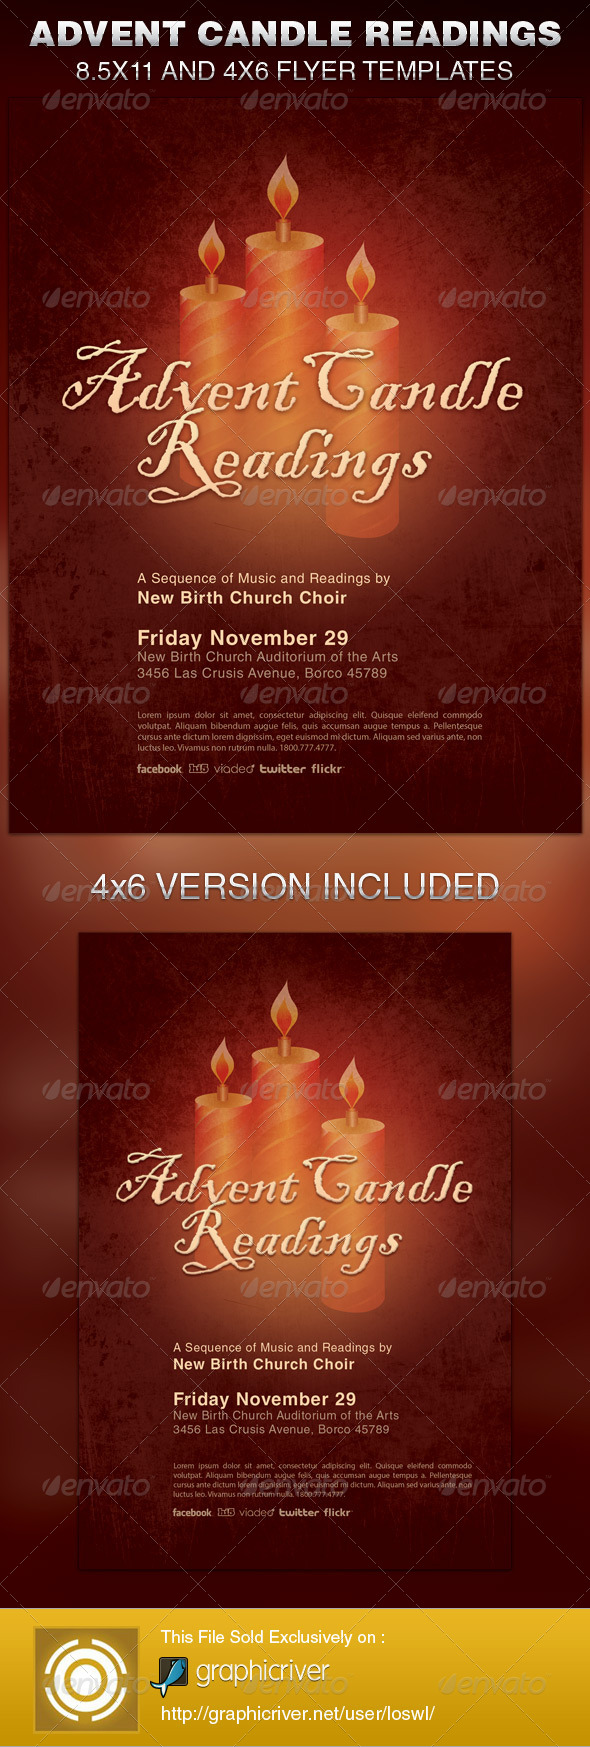 Advent Candle Readings Church Flyer Template - Church Flyers